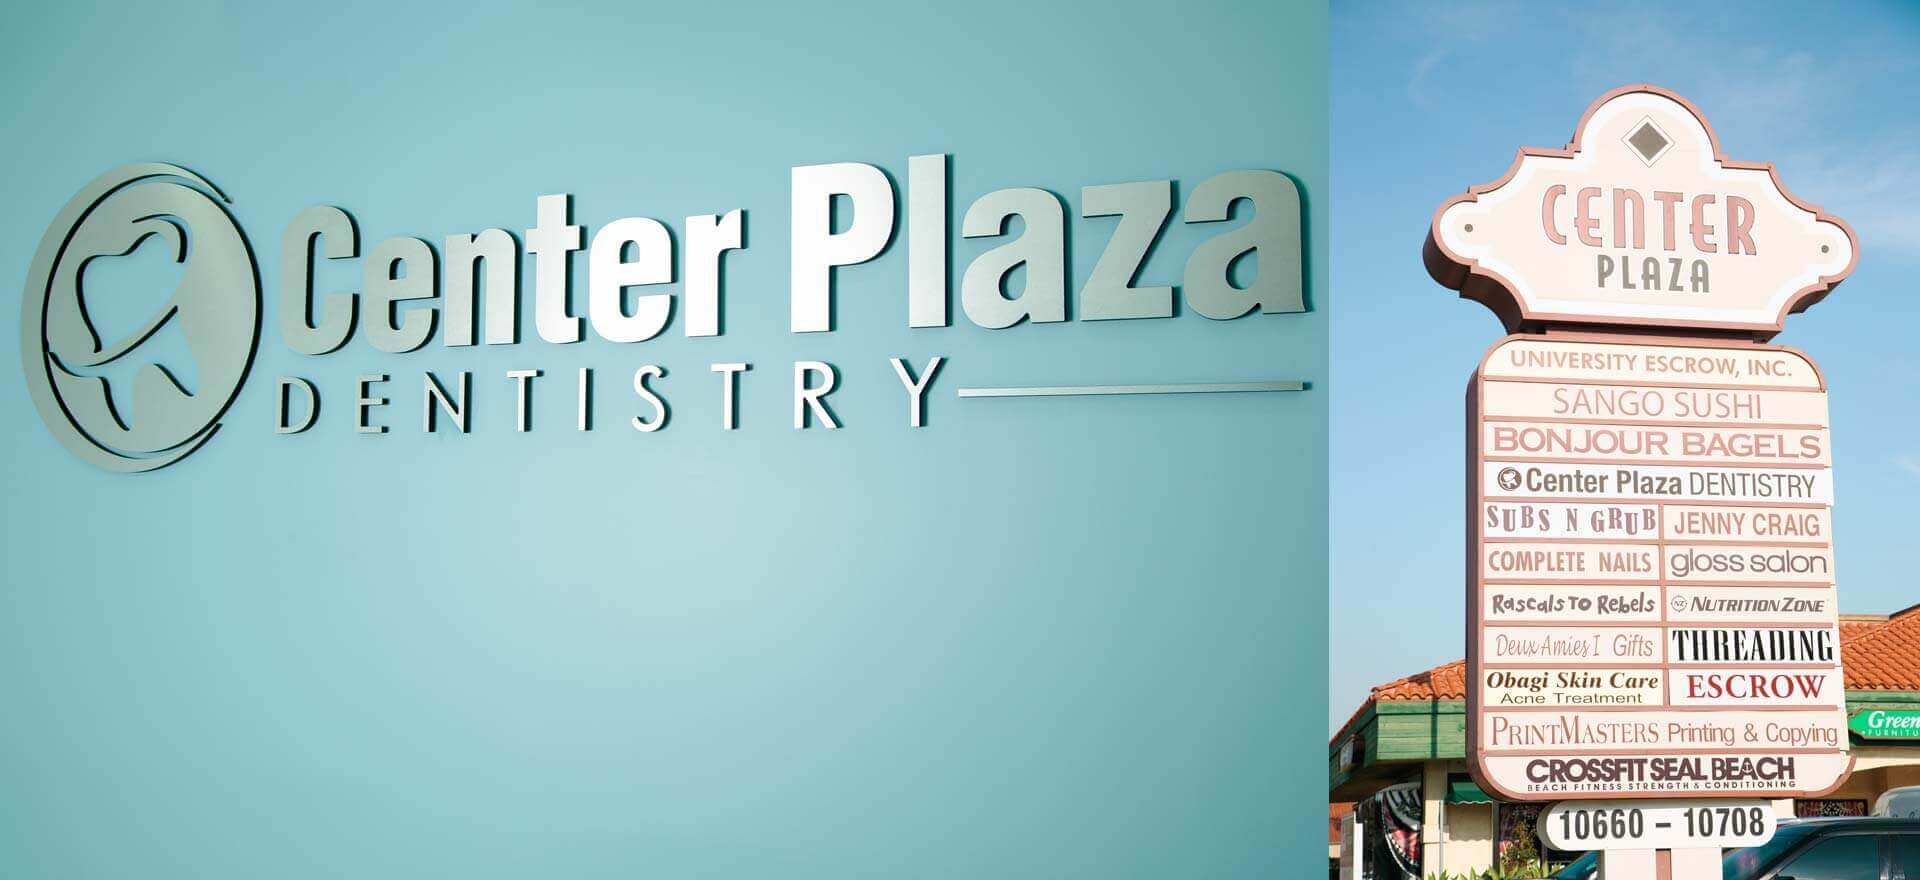 centerplaza dentistry logo and sign